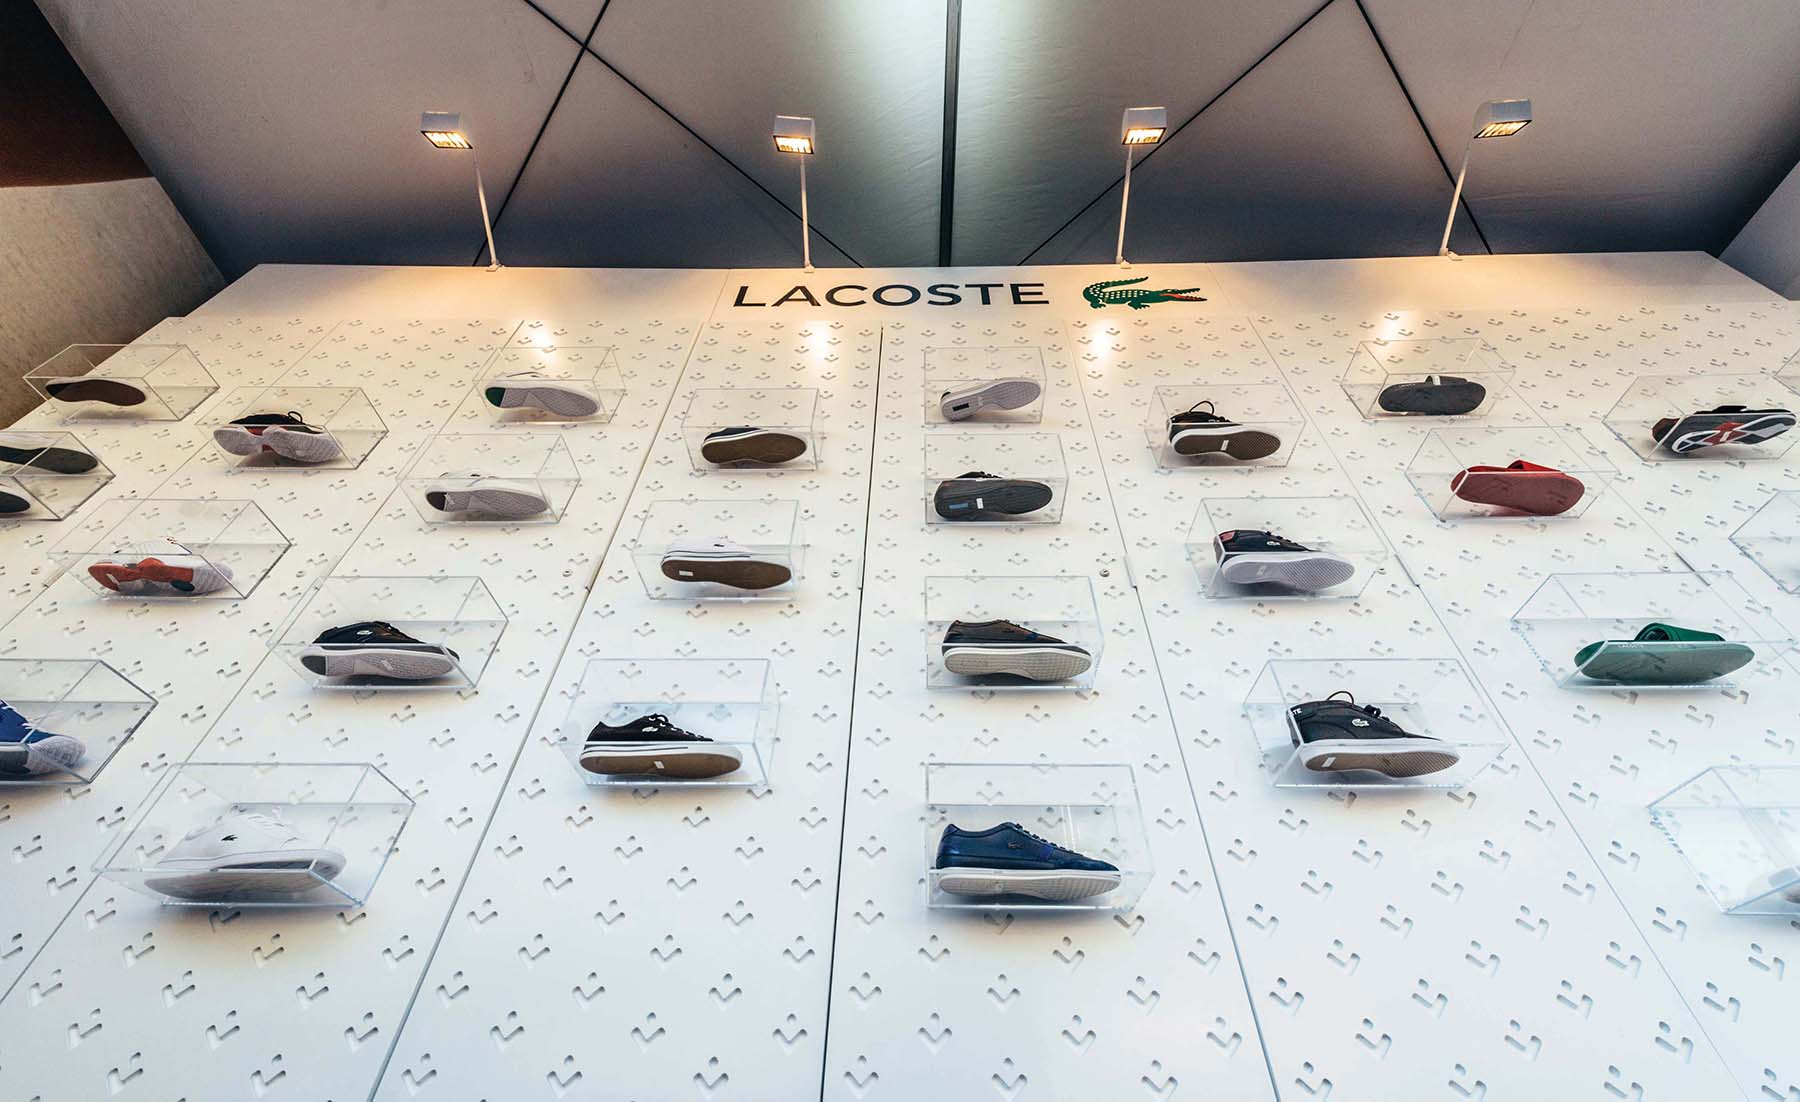 LACOSTE DISPLAY